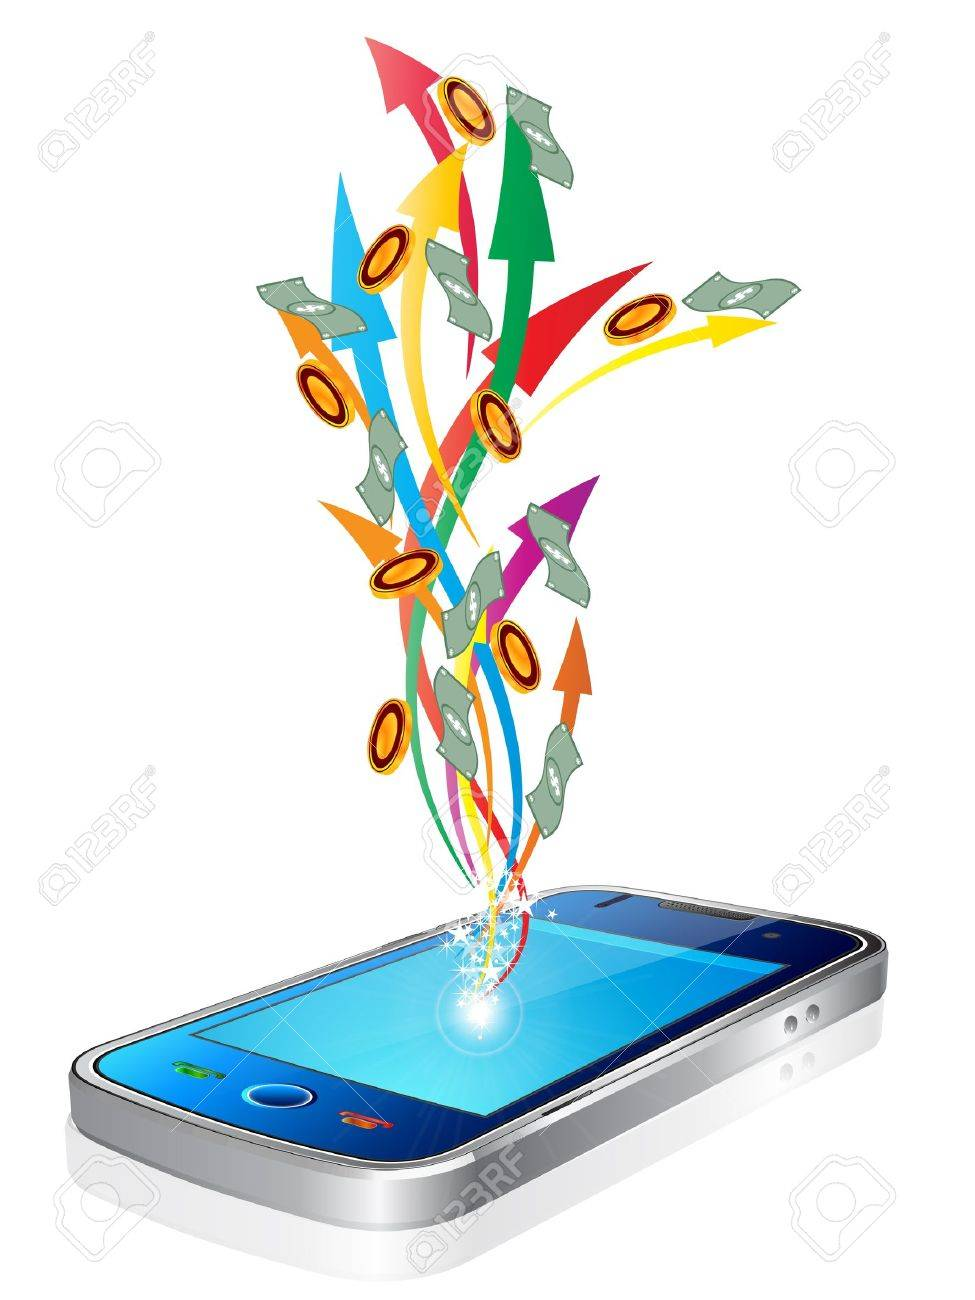 Money flying out of new style smart mobile phone - 11575803